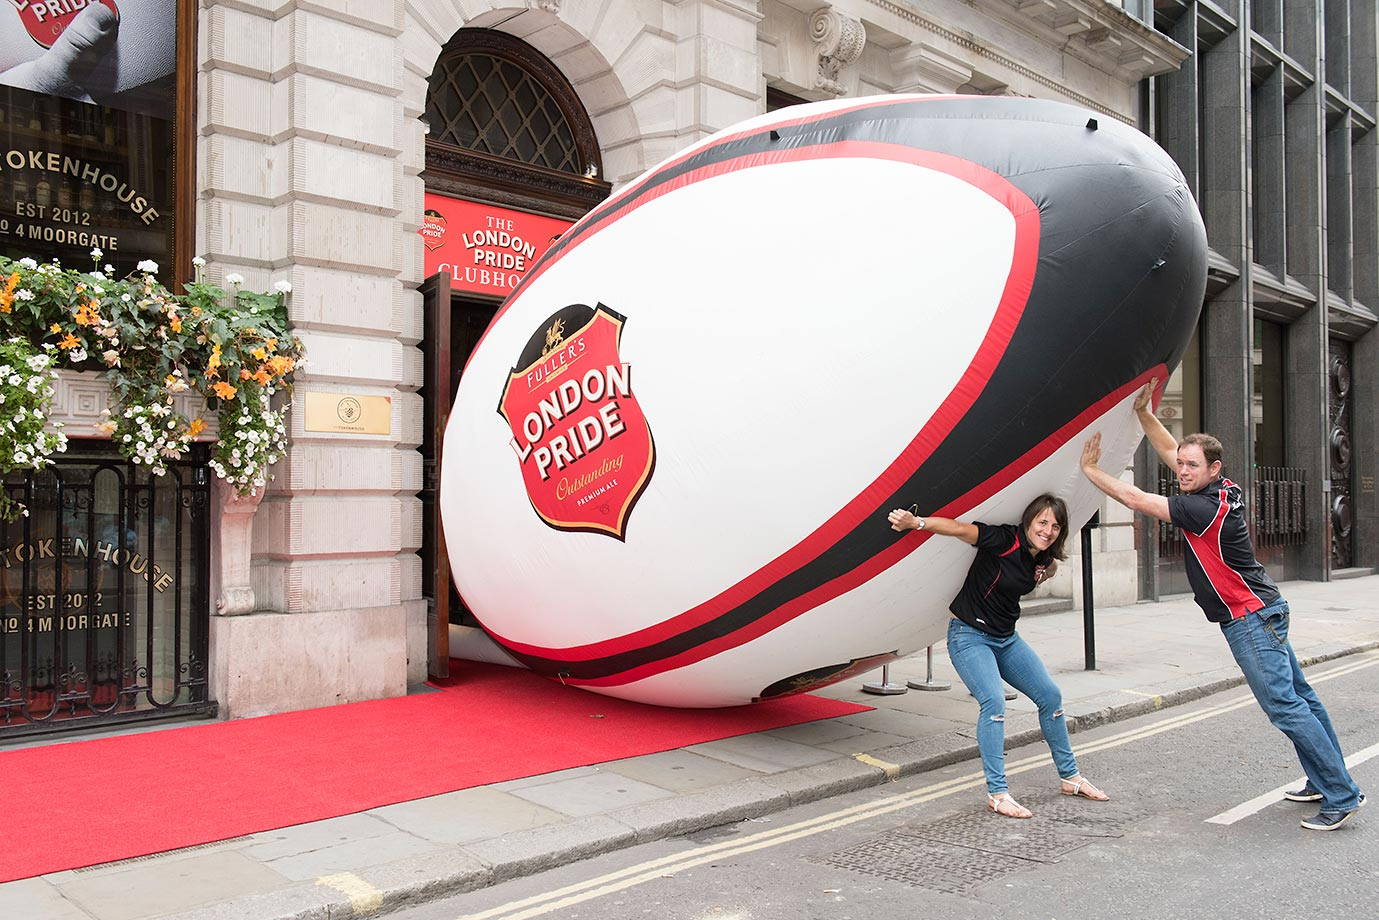 England World Cup winners Kyran Bracken and Katy McLean bring rugby to the City of London but overestimate the size of their task as they help put the finishing touches to the London Pride Clubhouse on Moorgate.